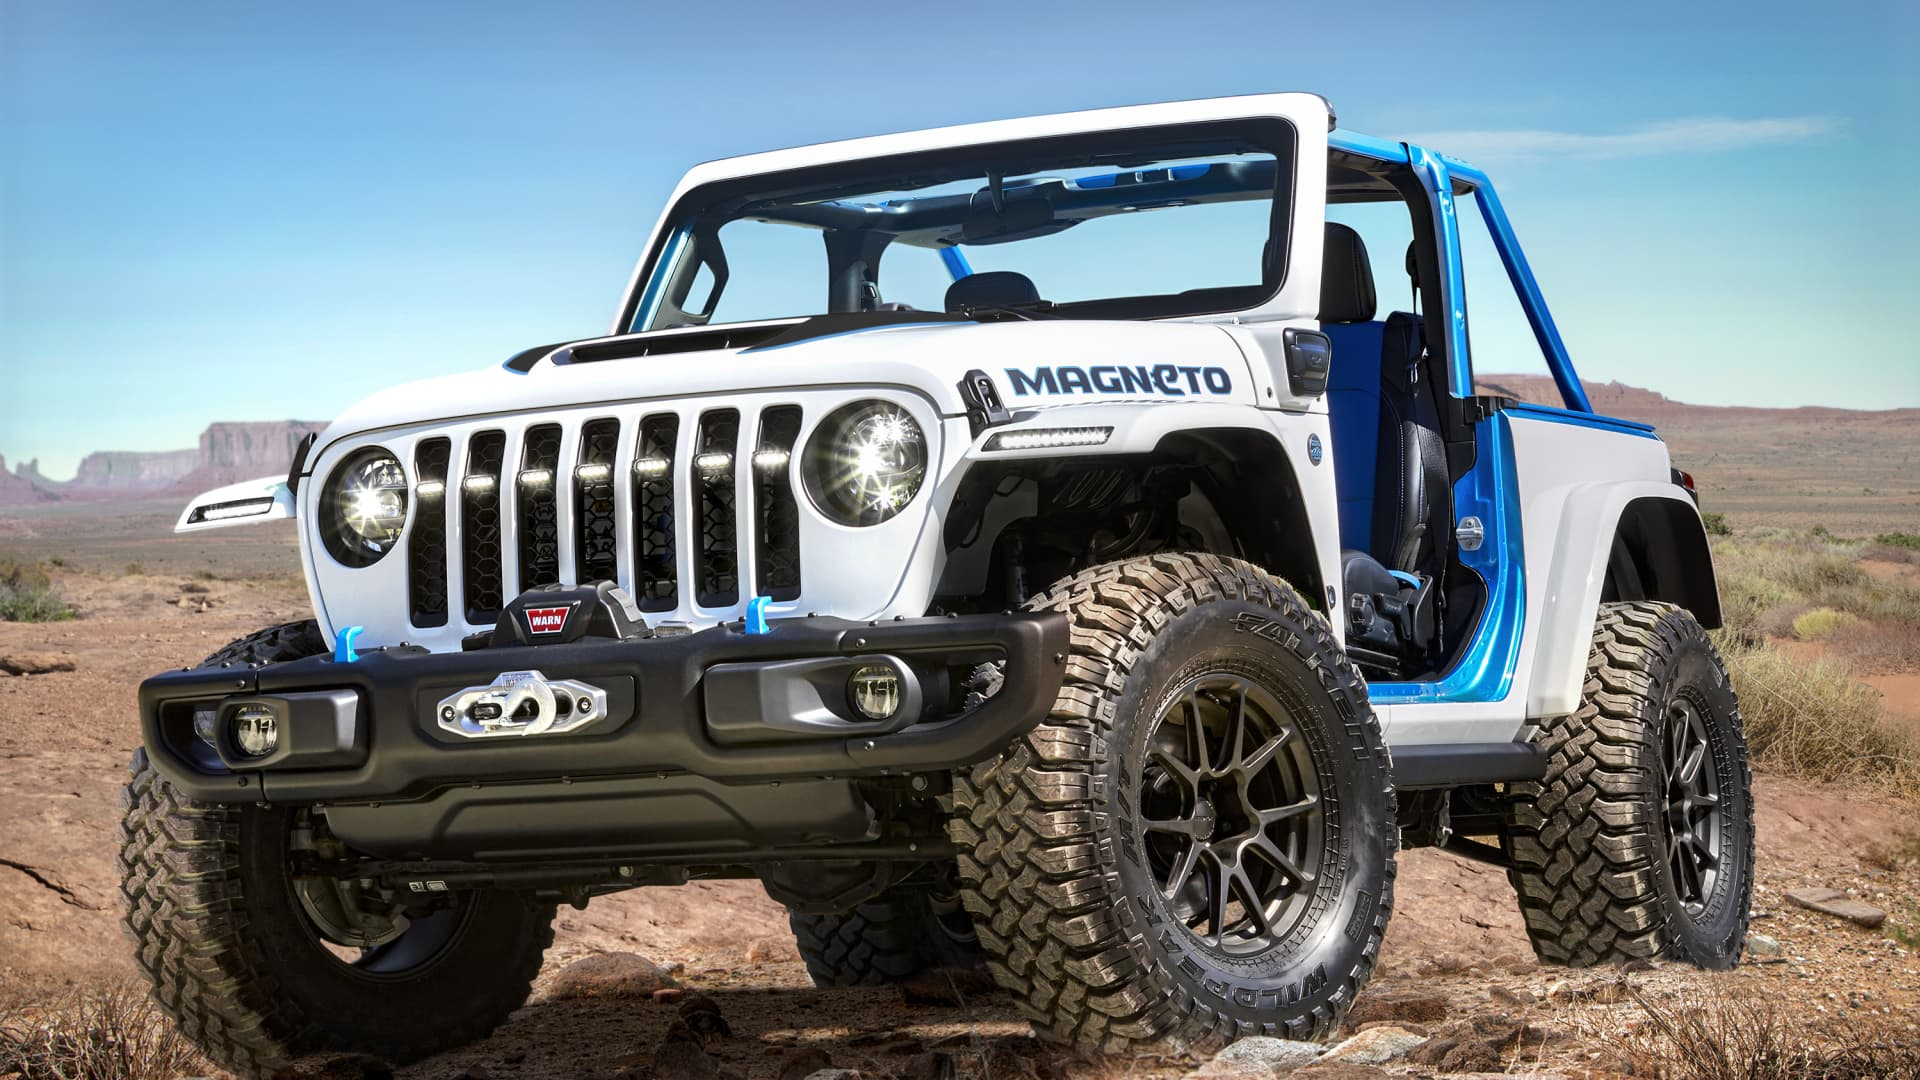 The Jeep Wrangler Magneto concept is a fully electric SUV based on a two-door 2020 Jeep Wrangler Rubicon.